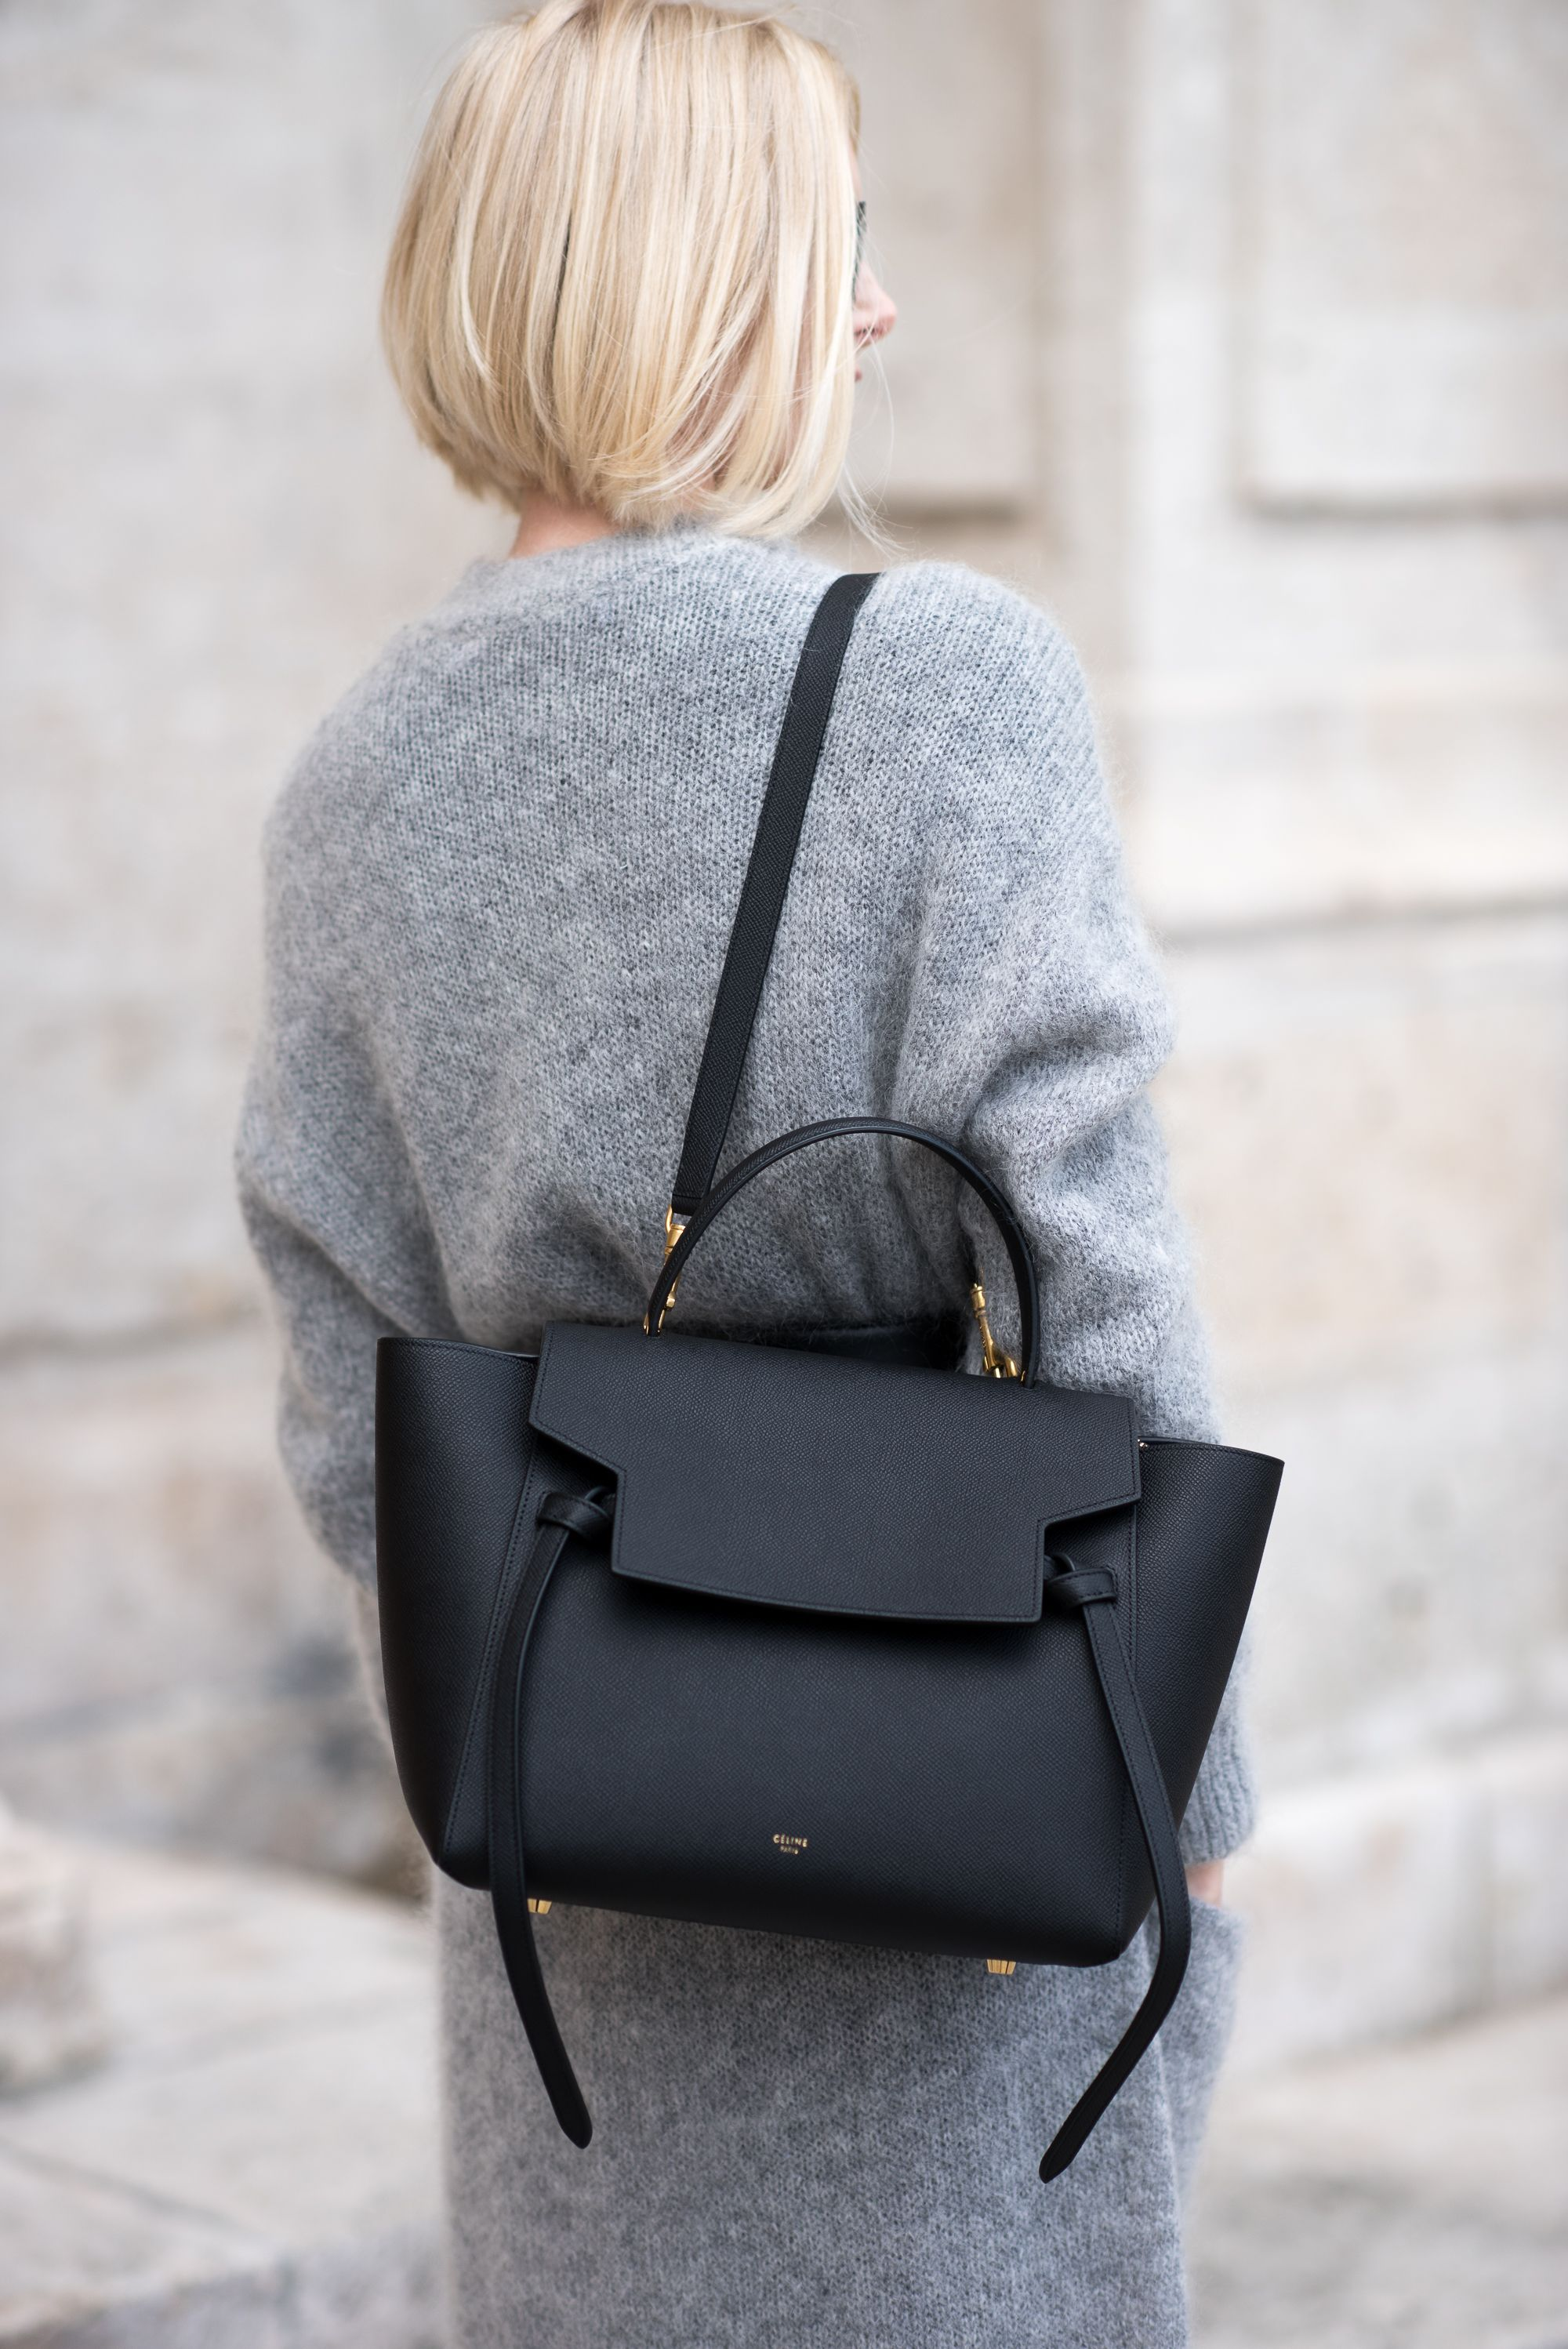 Céline belt bag | It's All About Street Style